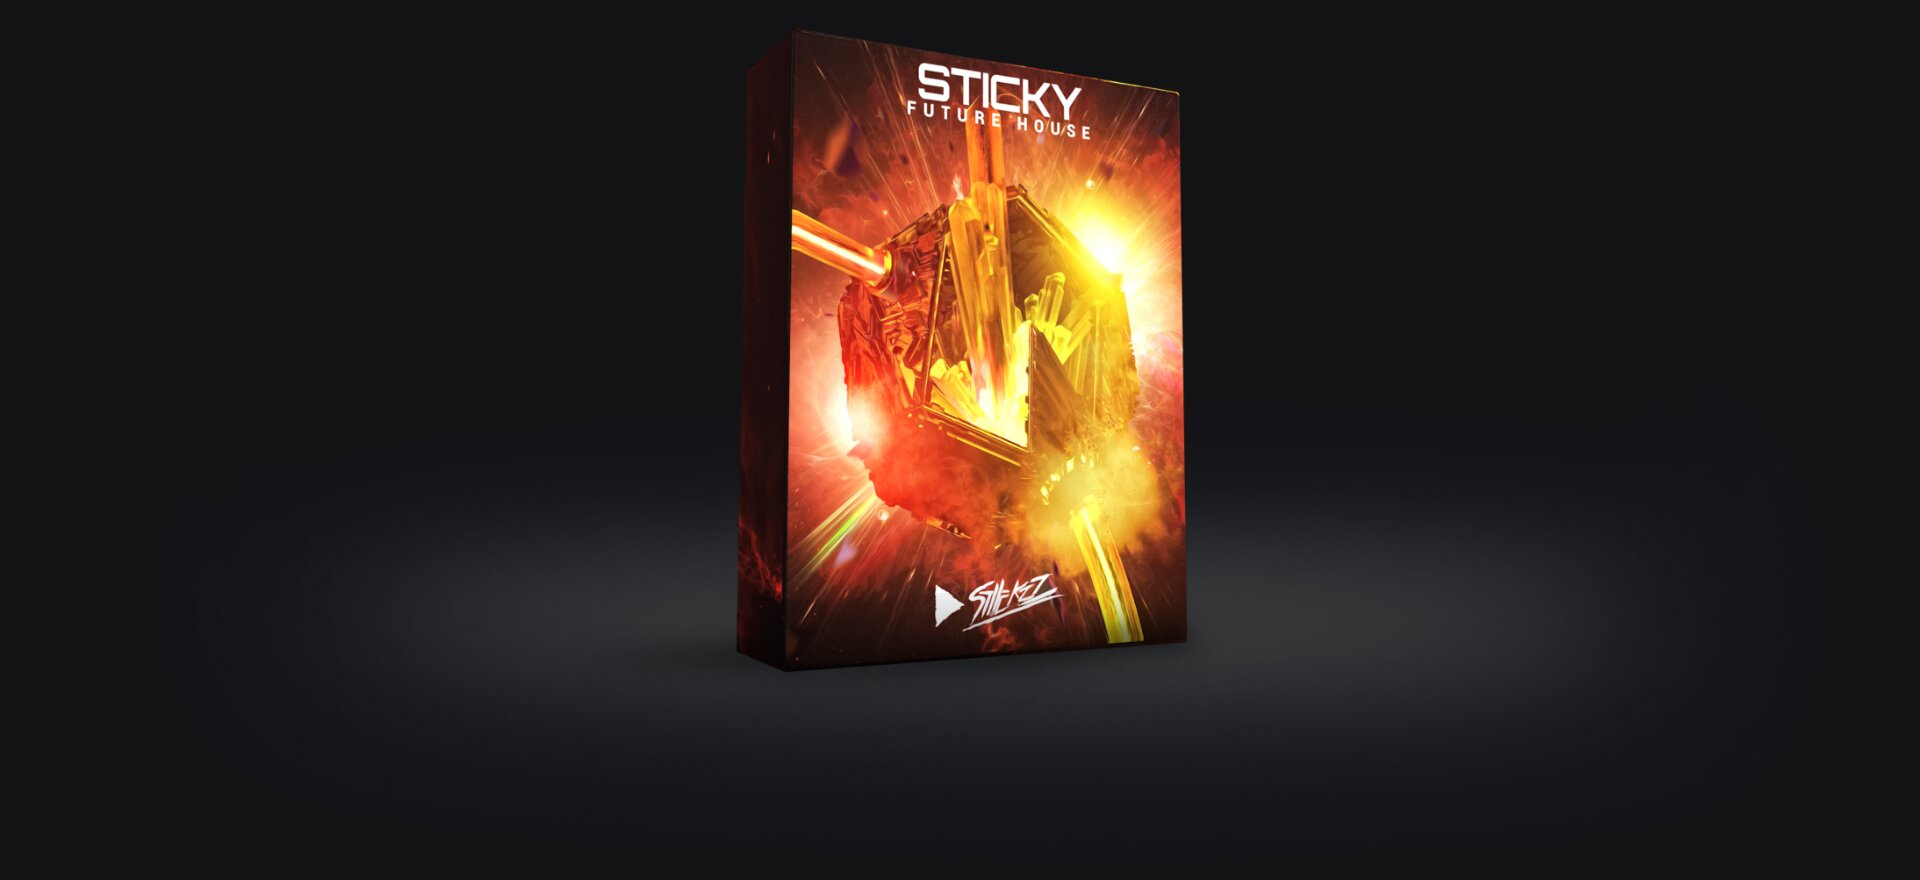 Sticky Future House - Box